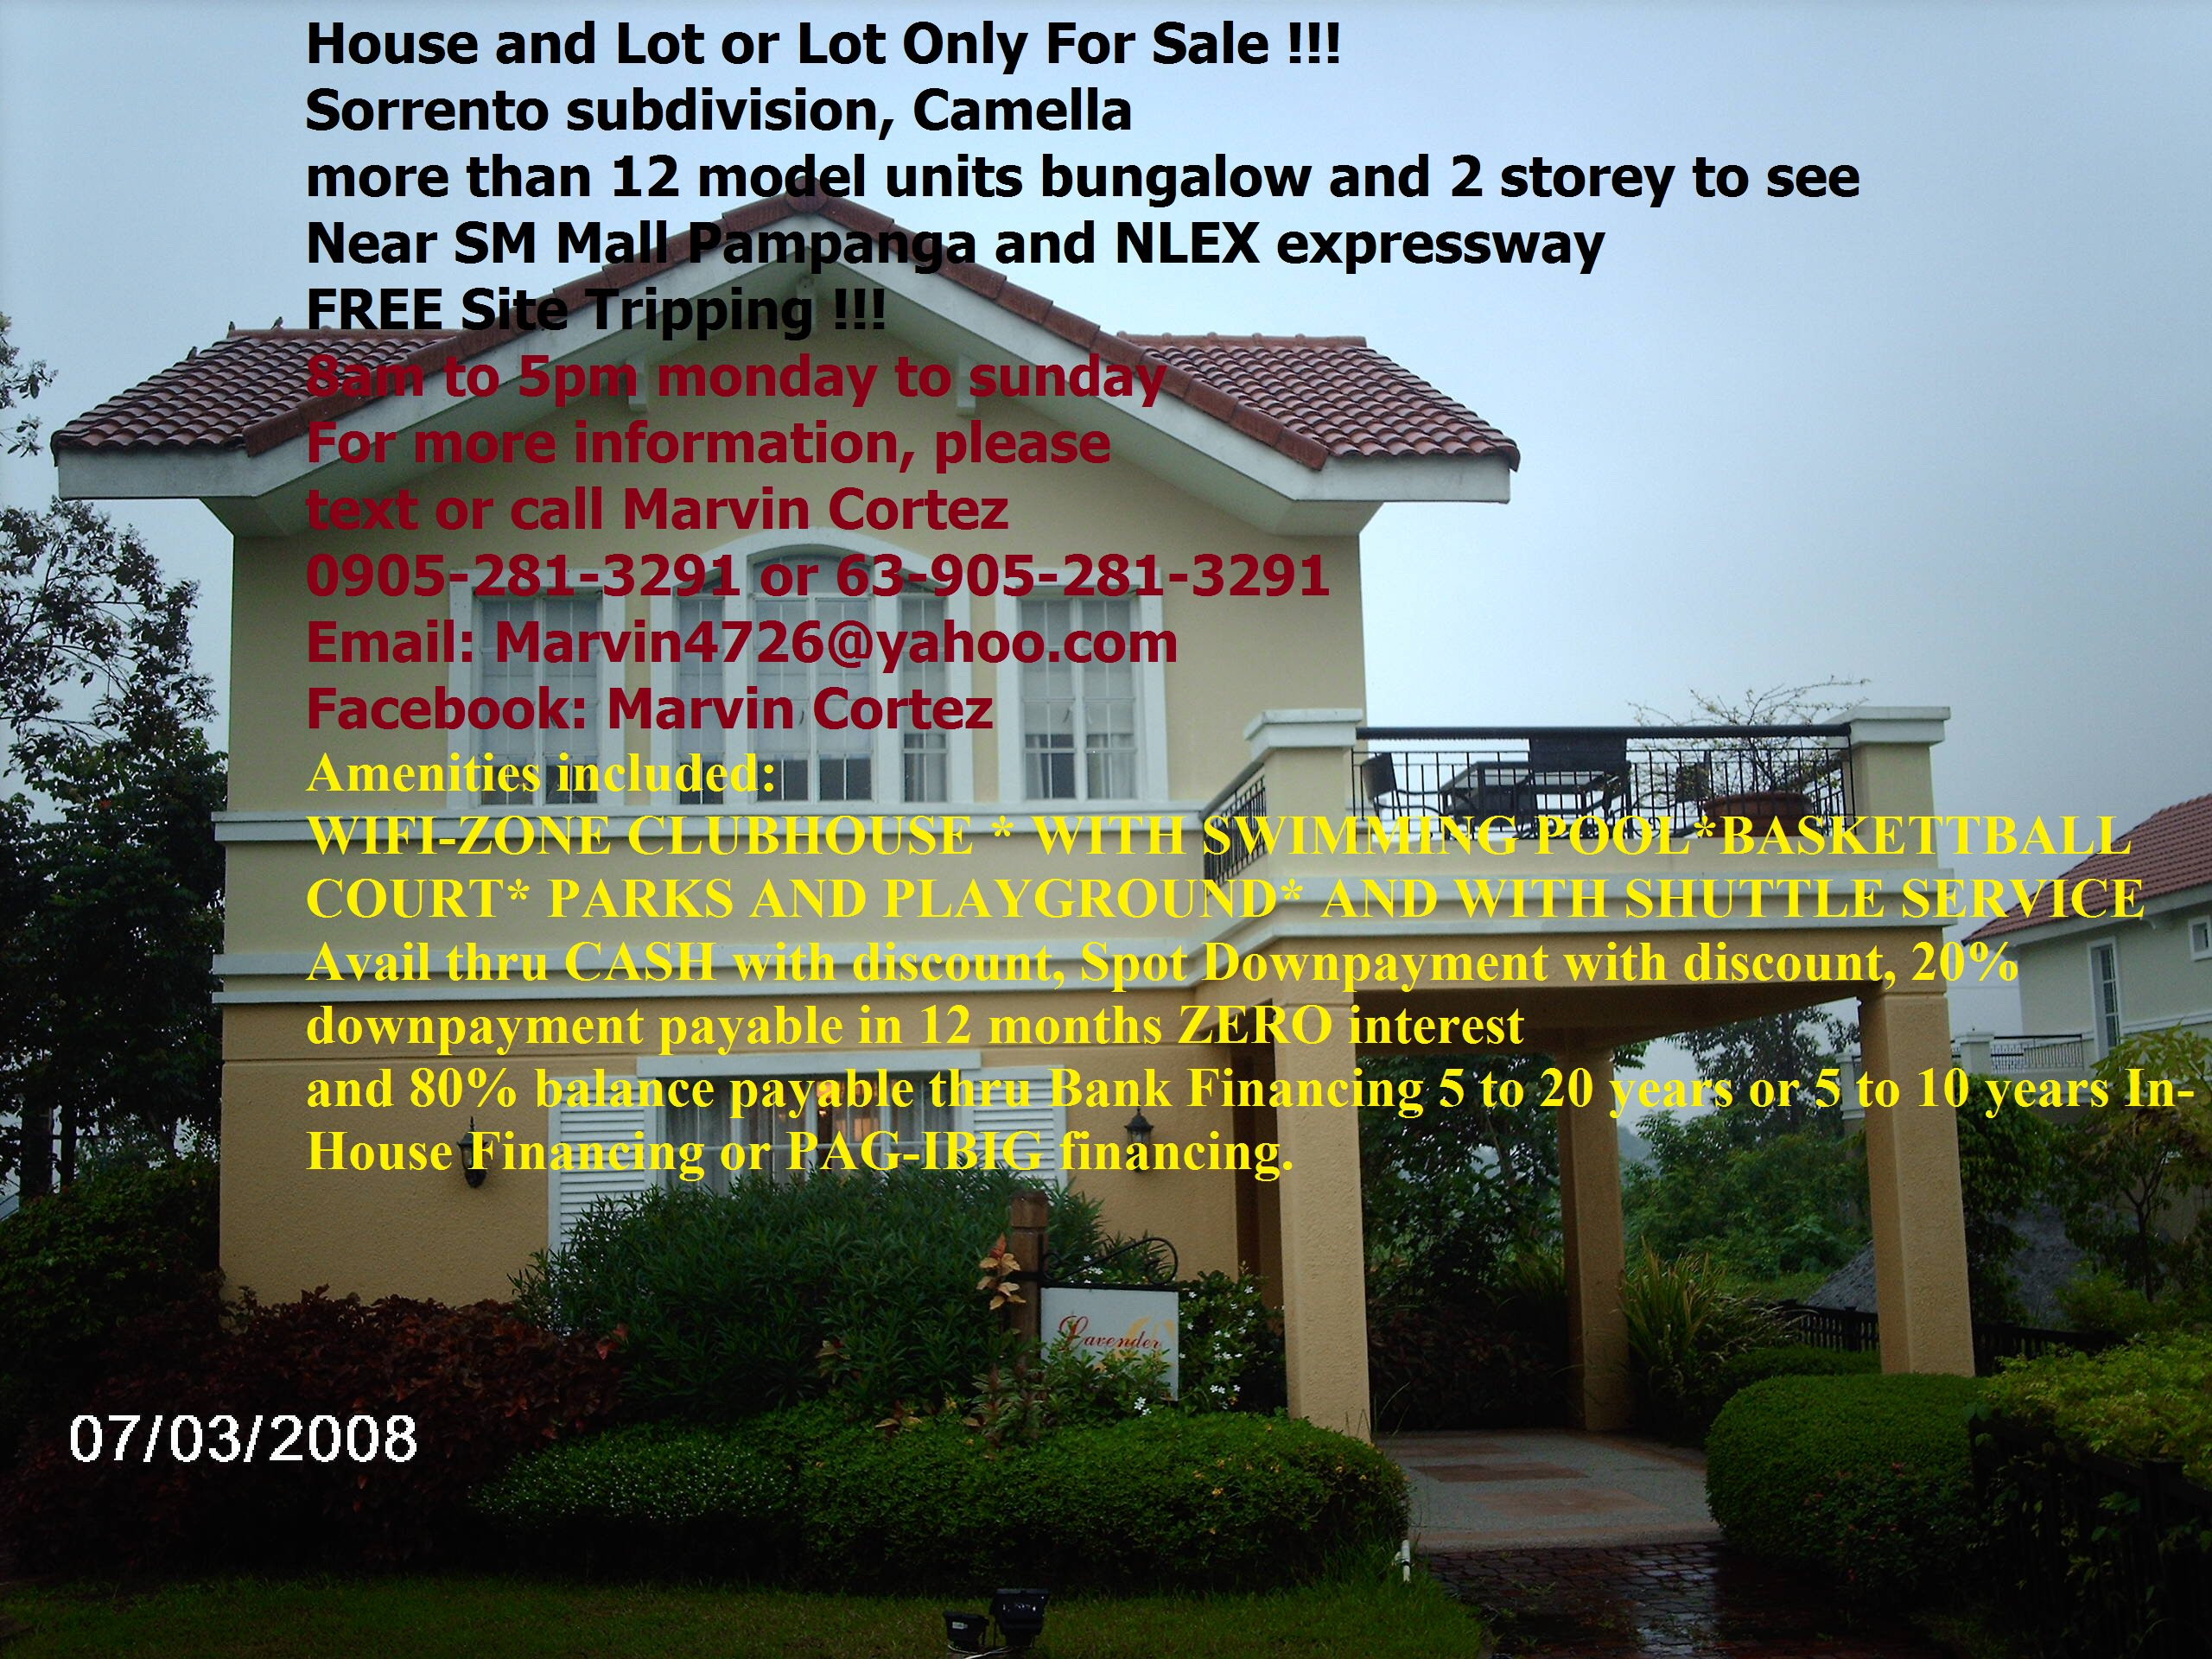 FOR SALE: house and lot for sale. near SM Mall Pampanga and Marquee Mall Angeles City